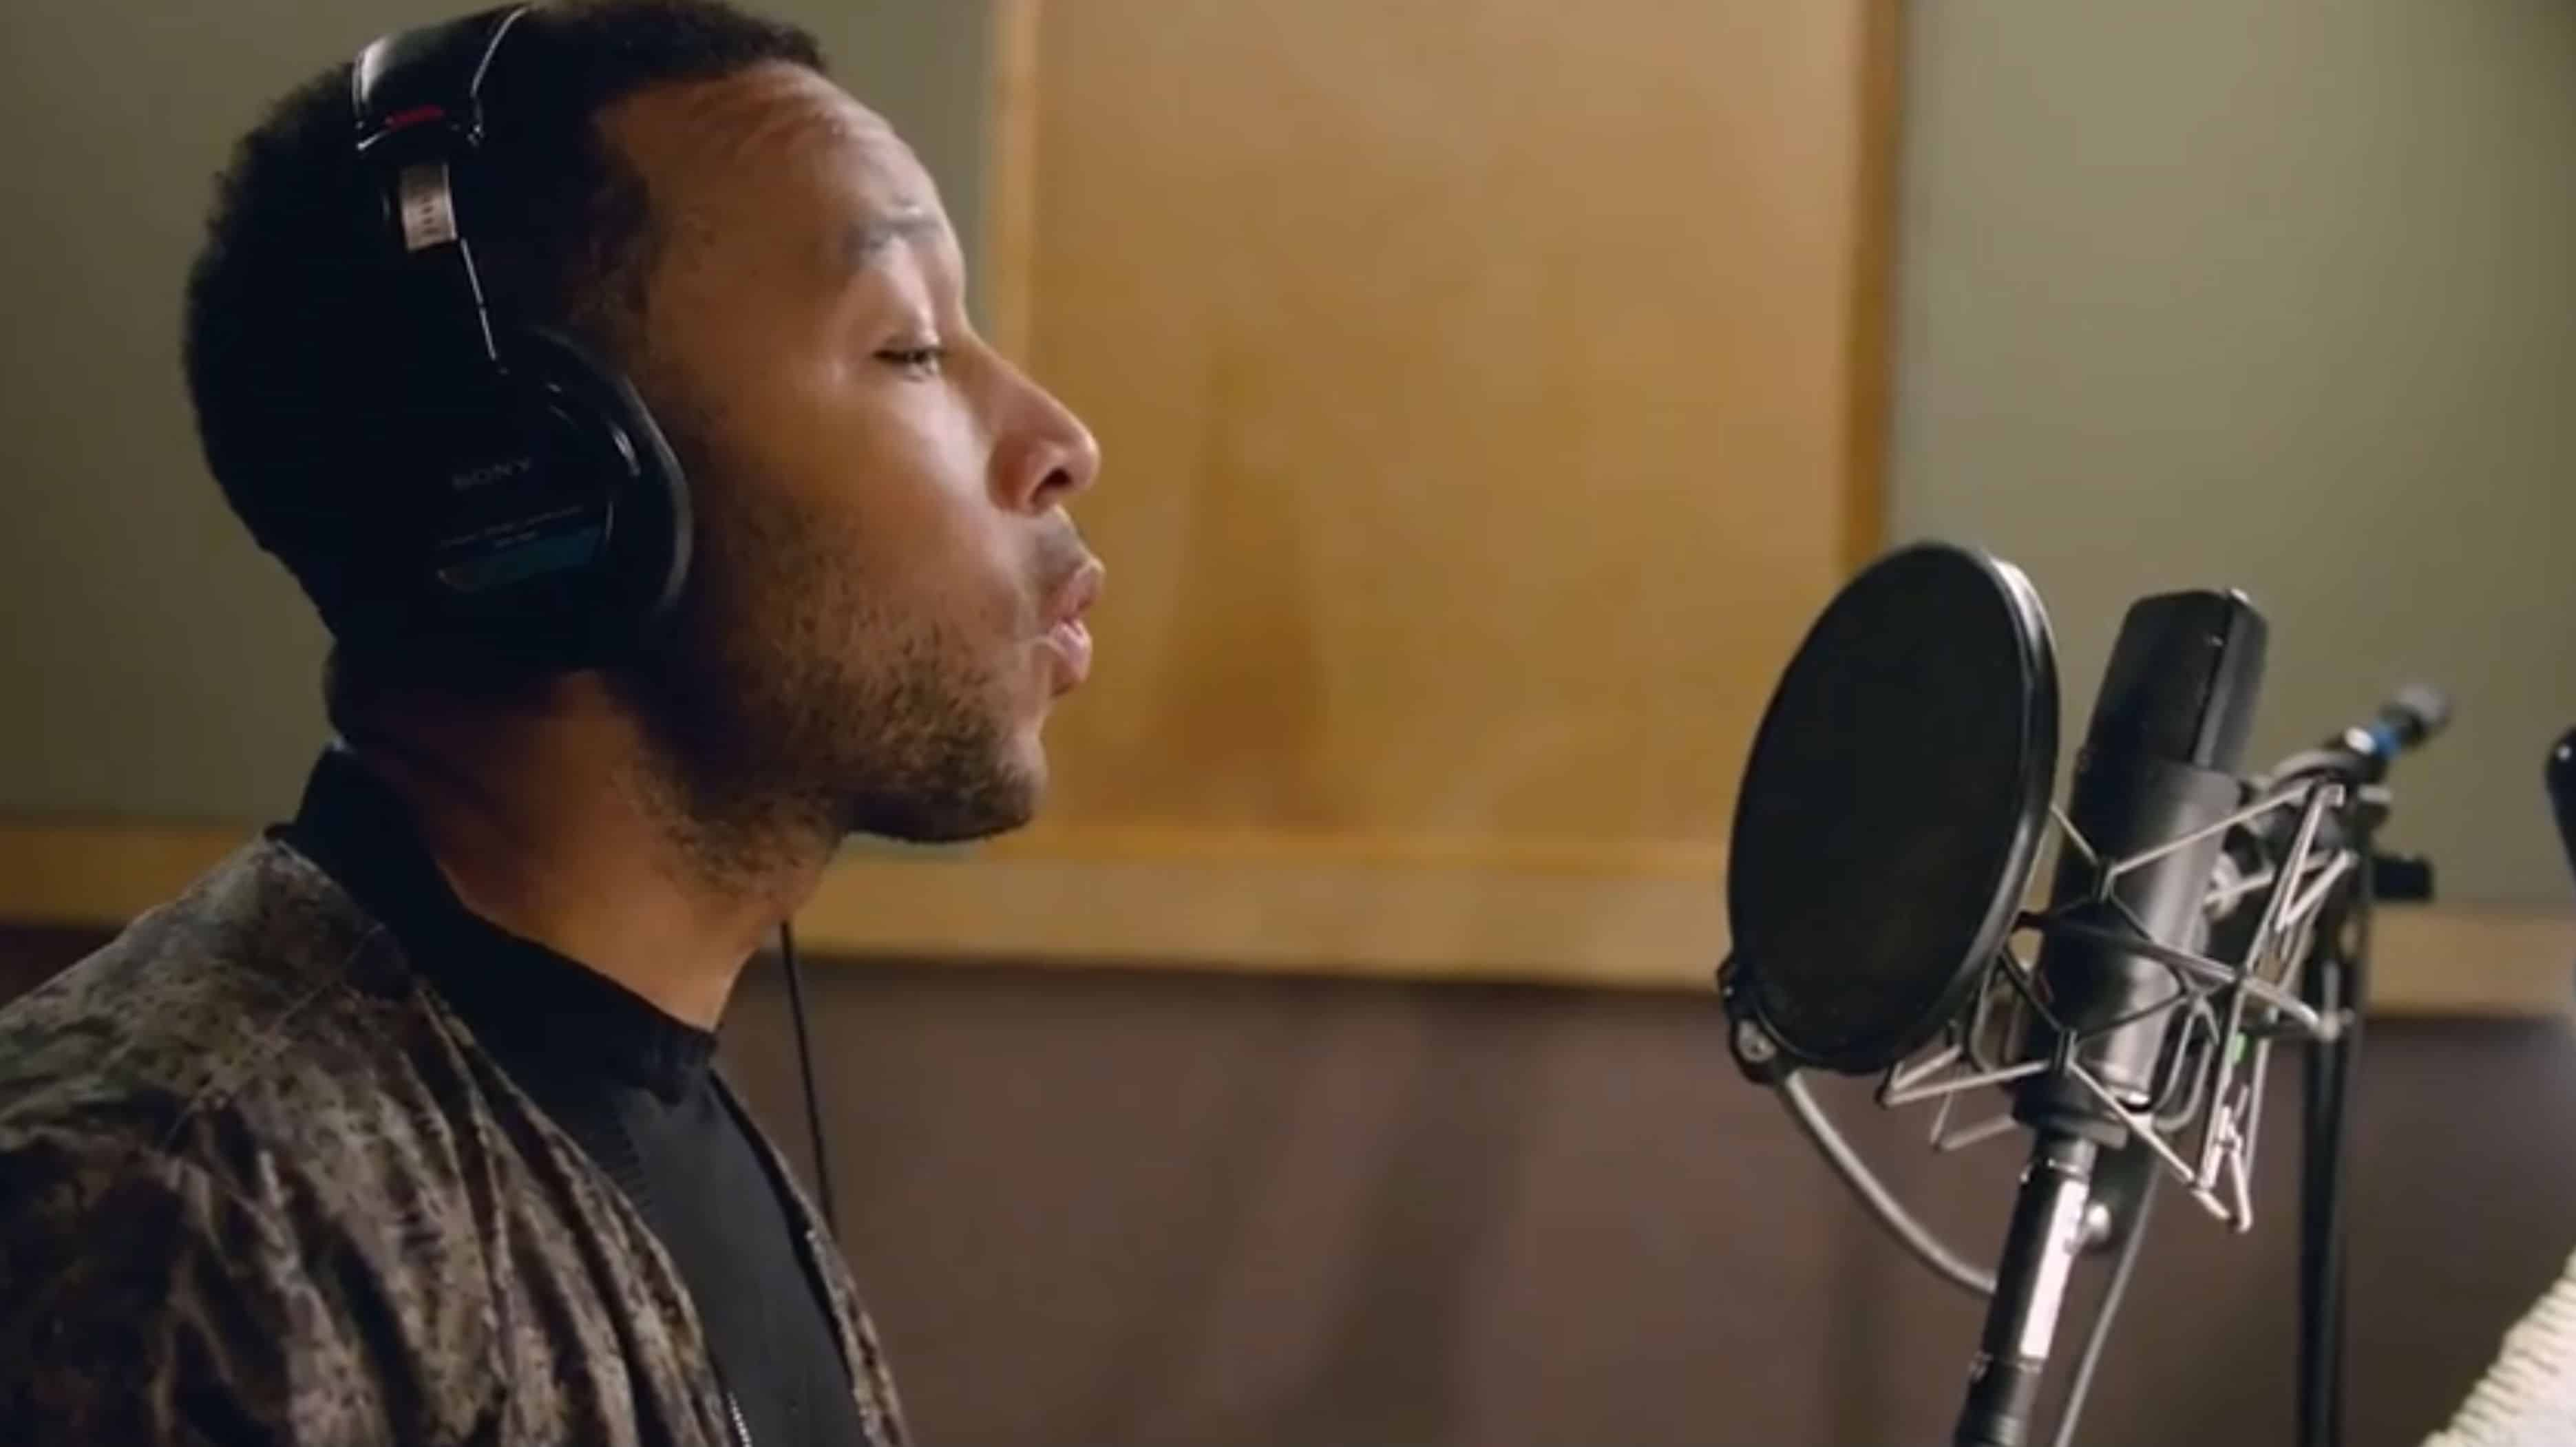 A demo from Google I/O shows John Legend recording his voice, which is coming soon to Google Assistant.